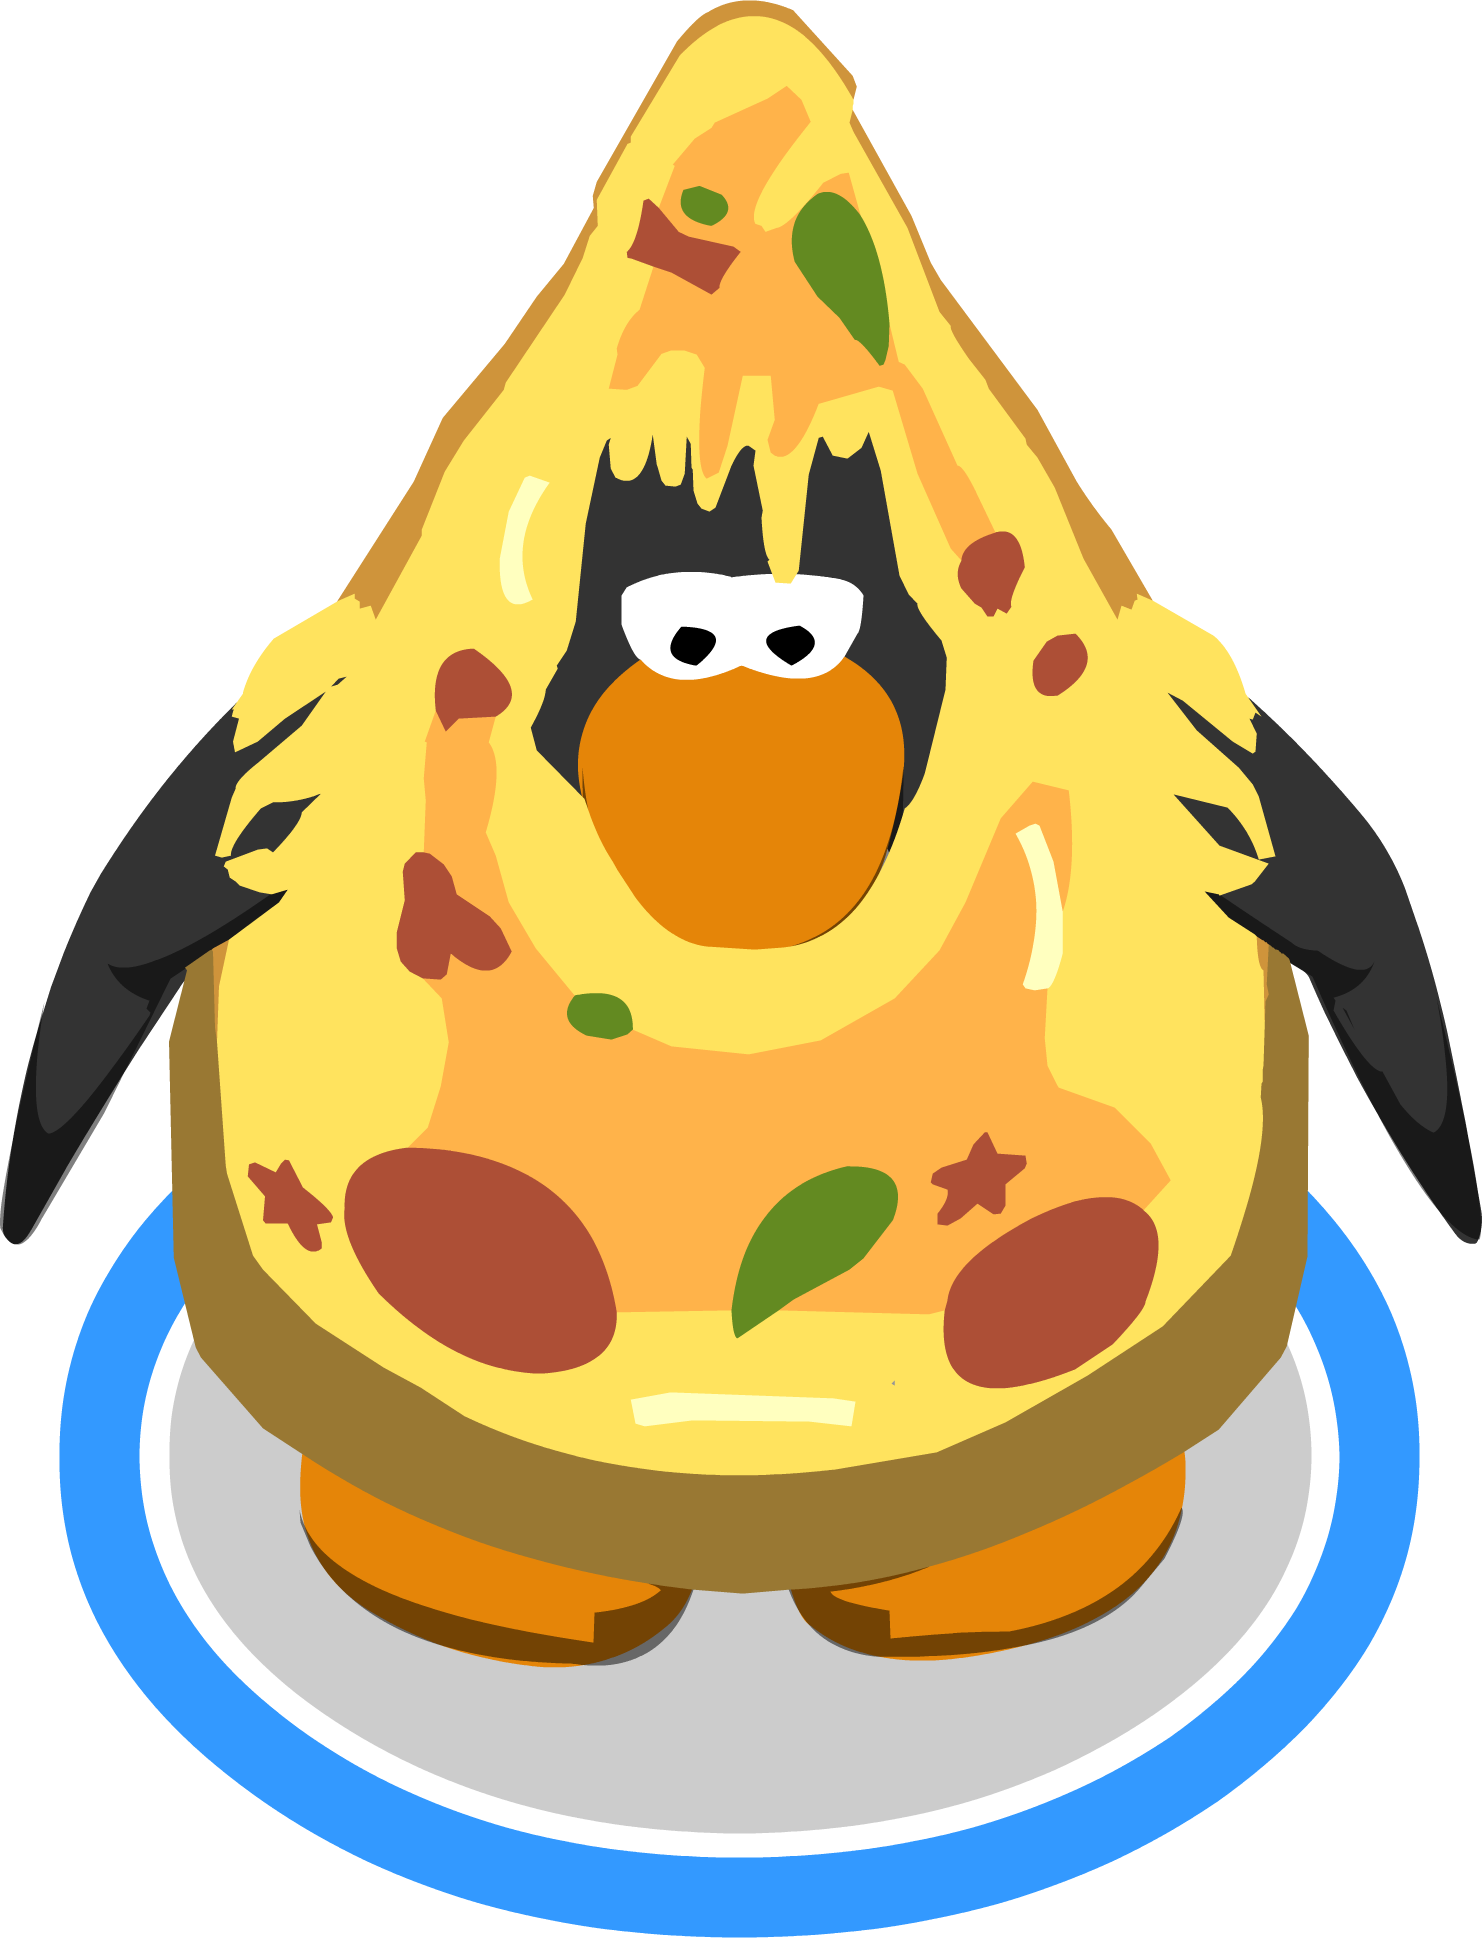 Image extra cheesy in. Costume clipart game